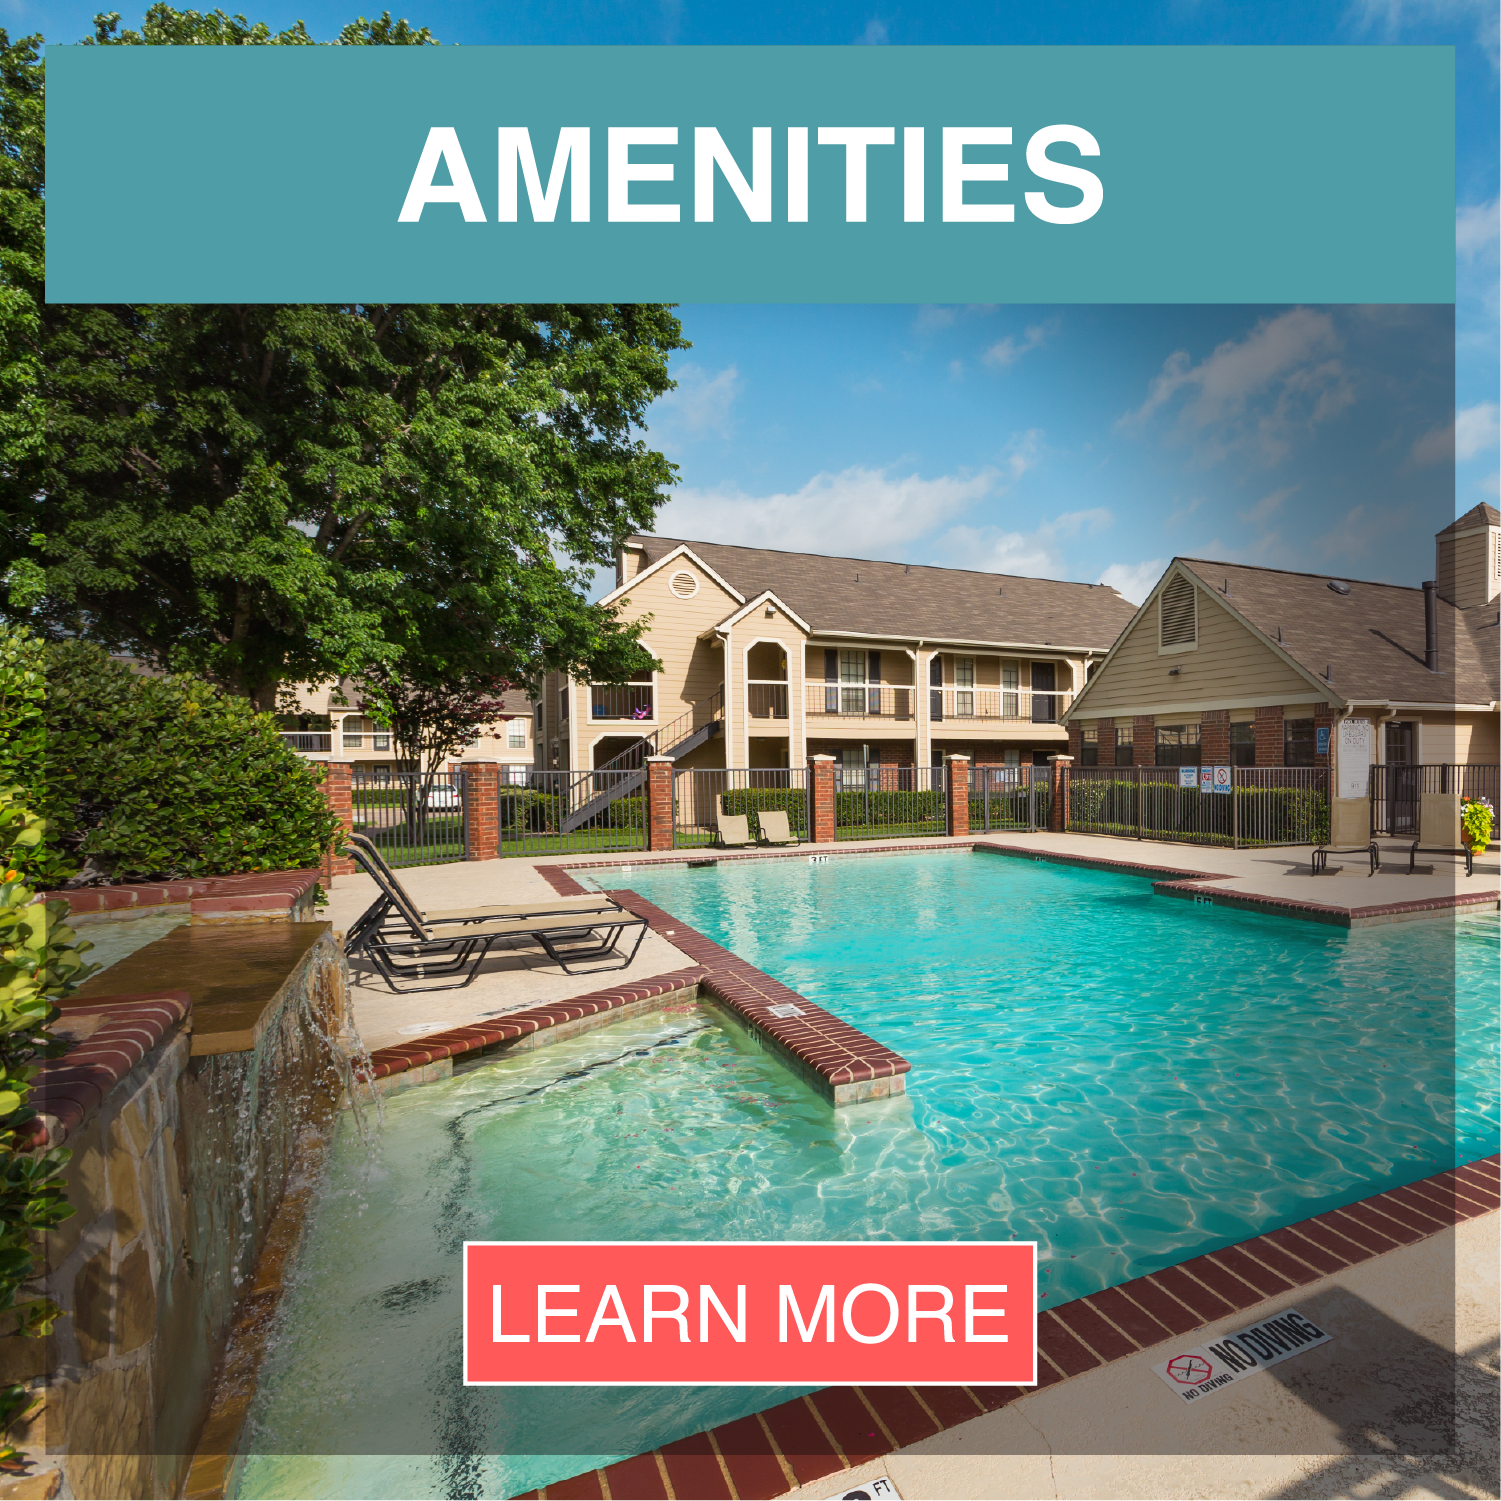 Link to amenities at The Arbors of Carrollton in Carrollton, Texas